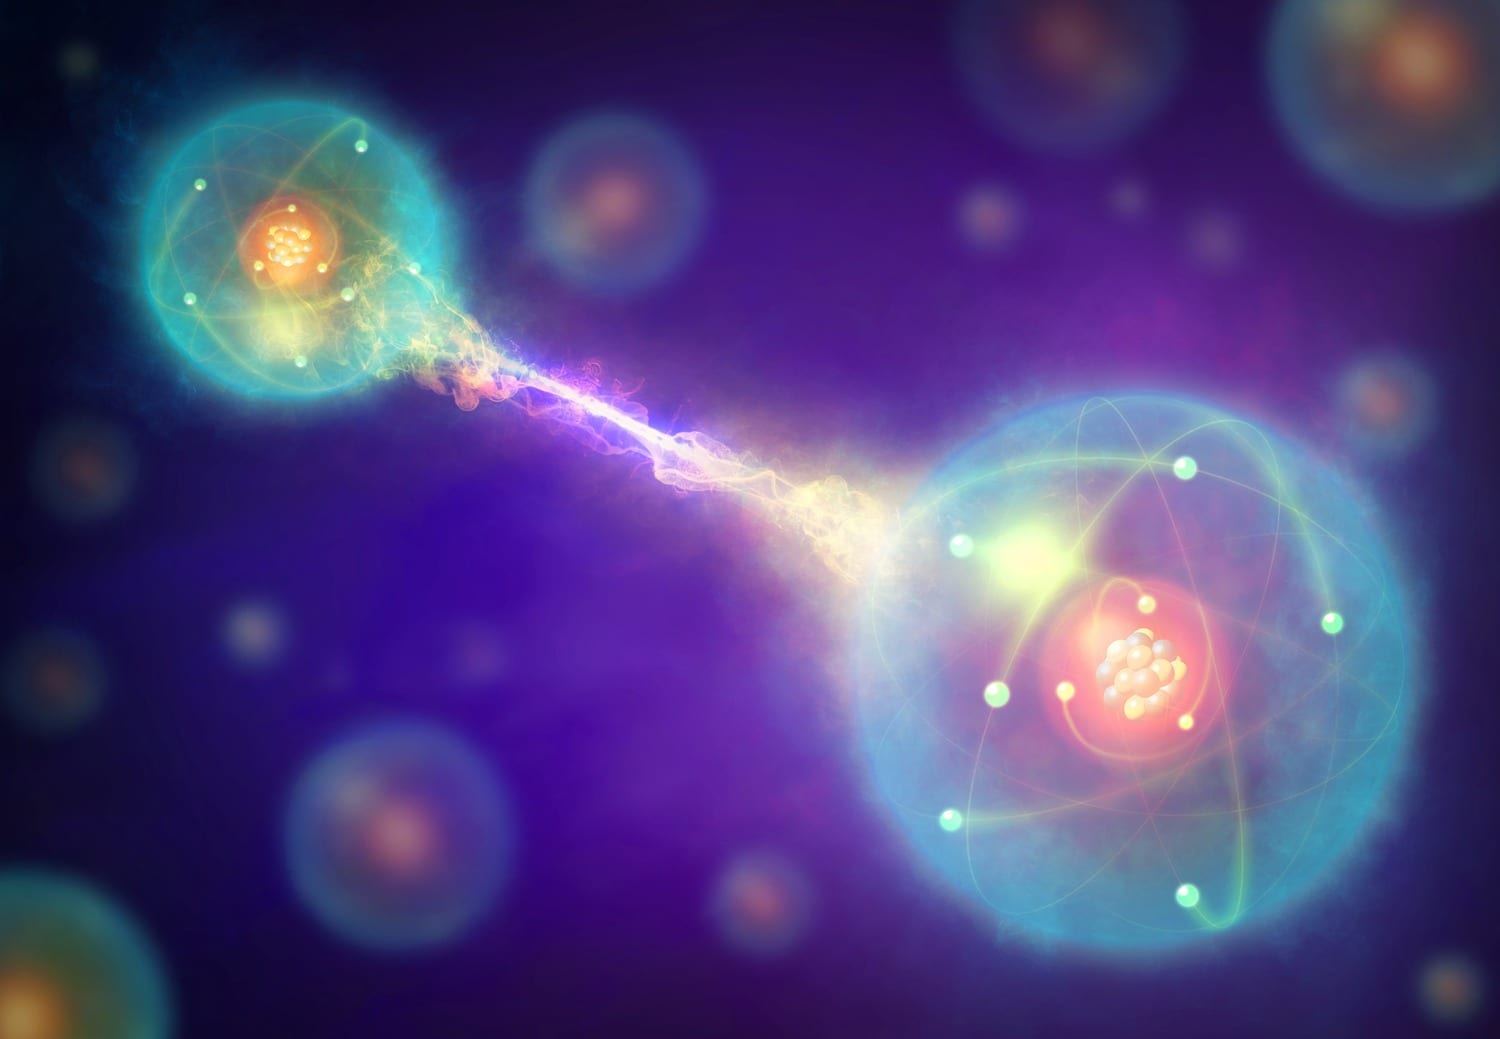 Light Biophotons in the brain?